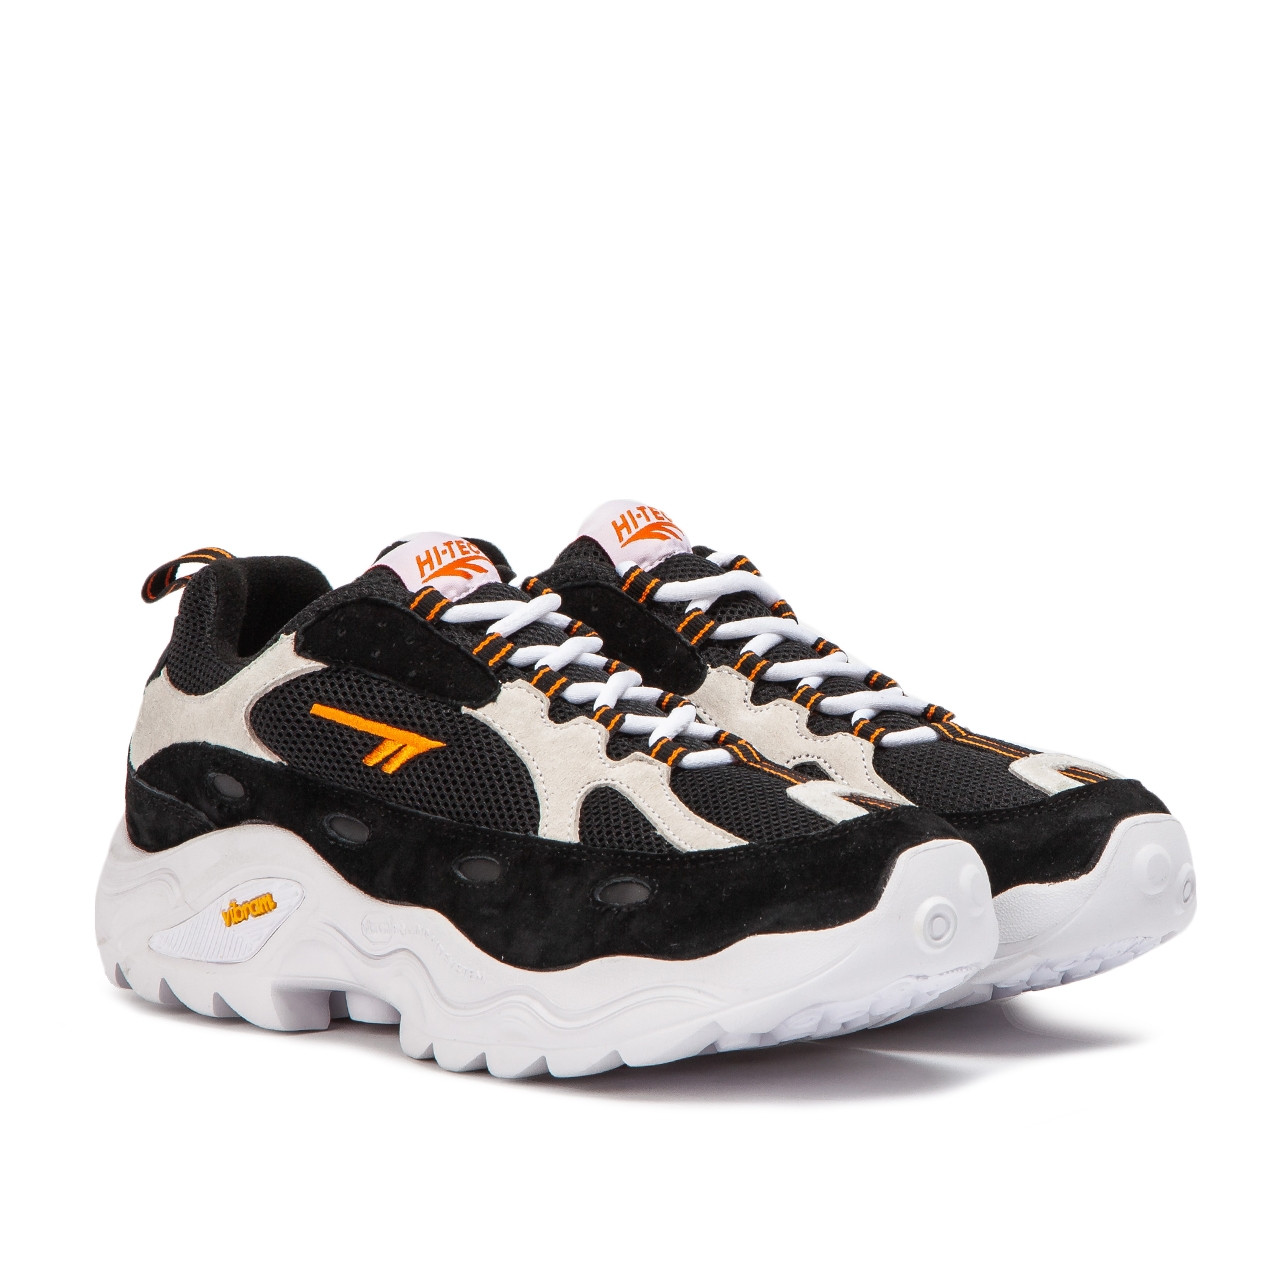 Hi Tec Com Hi Tec Hts Flash Adv Racer Black White Neon Orange